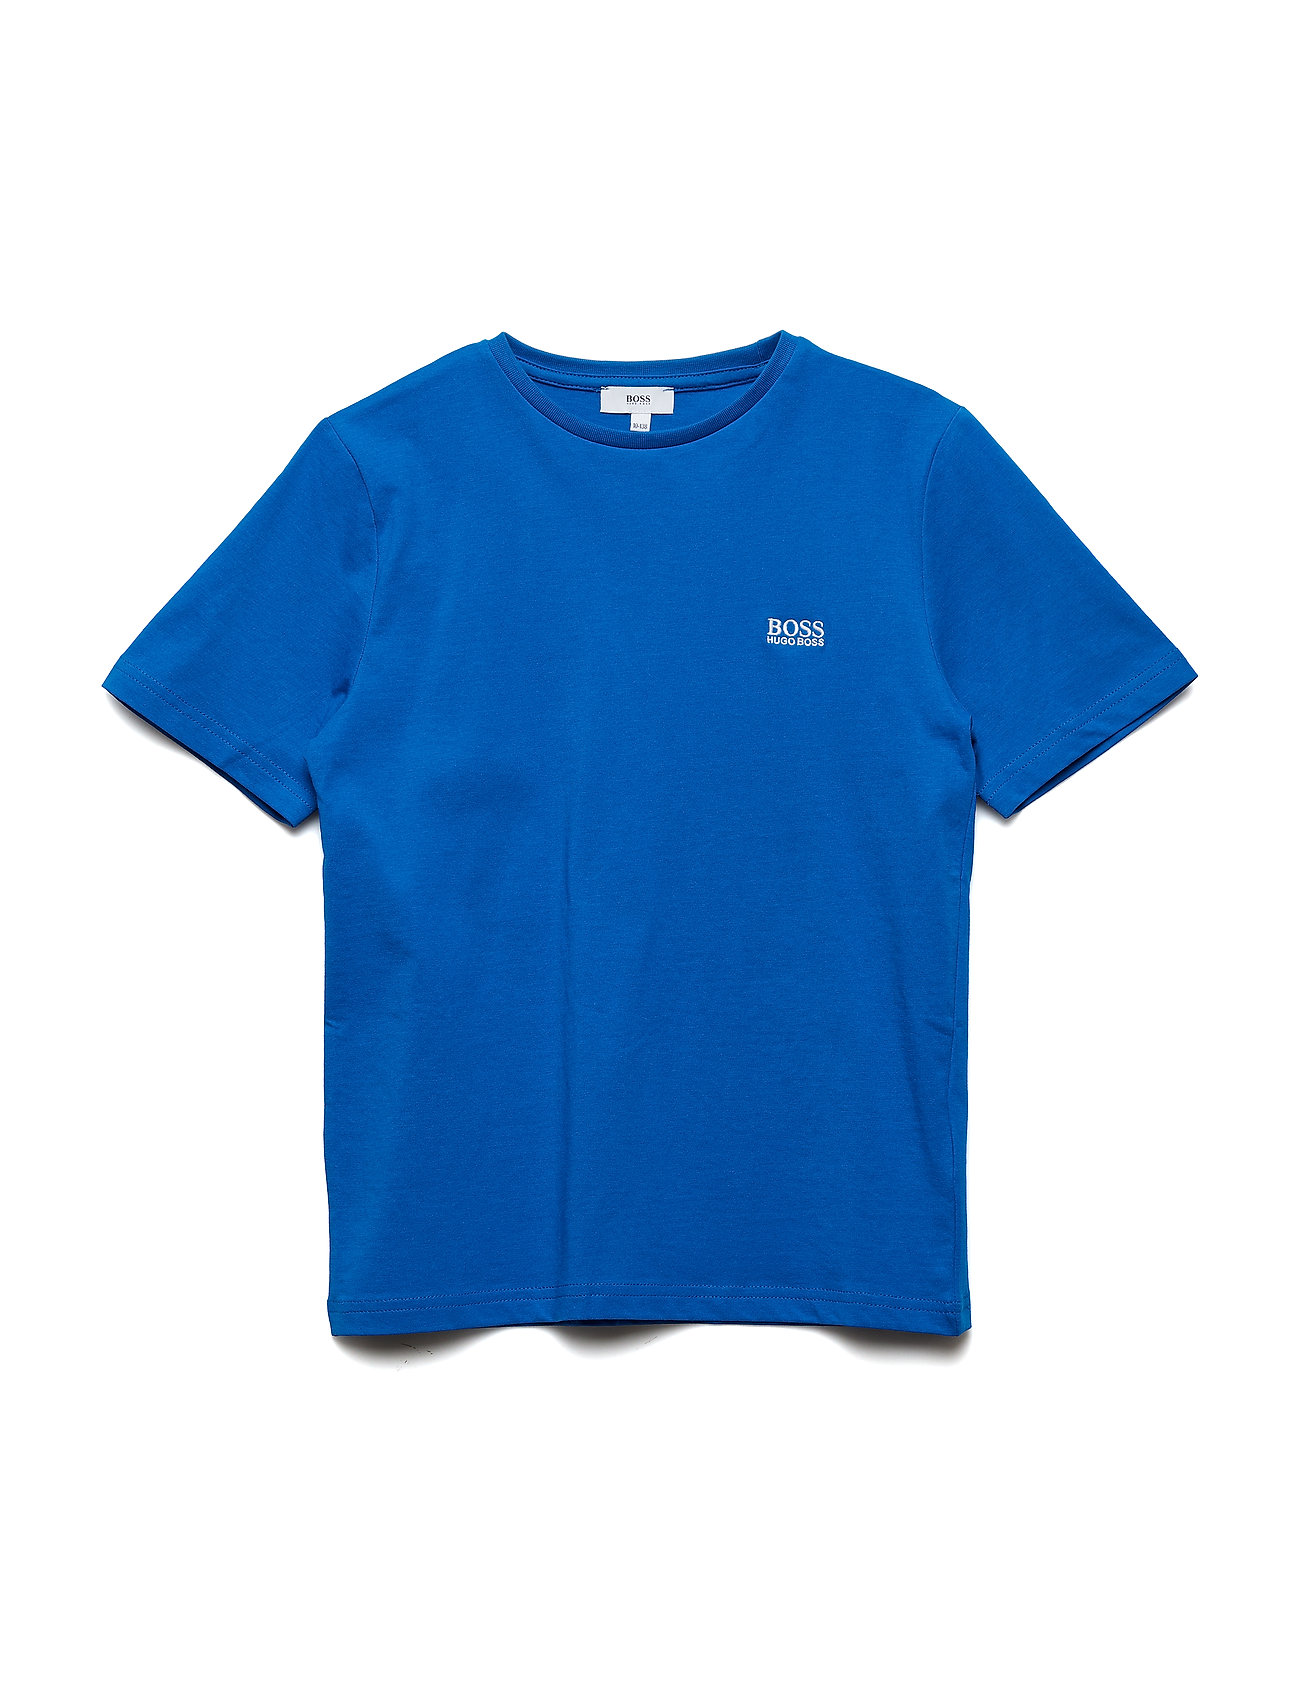 BOSS SHORT SLEEVES TEE-SHIRT - TURQUOISE